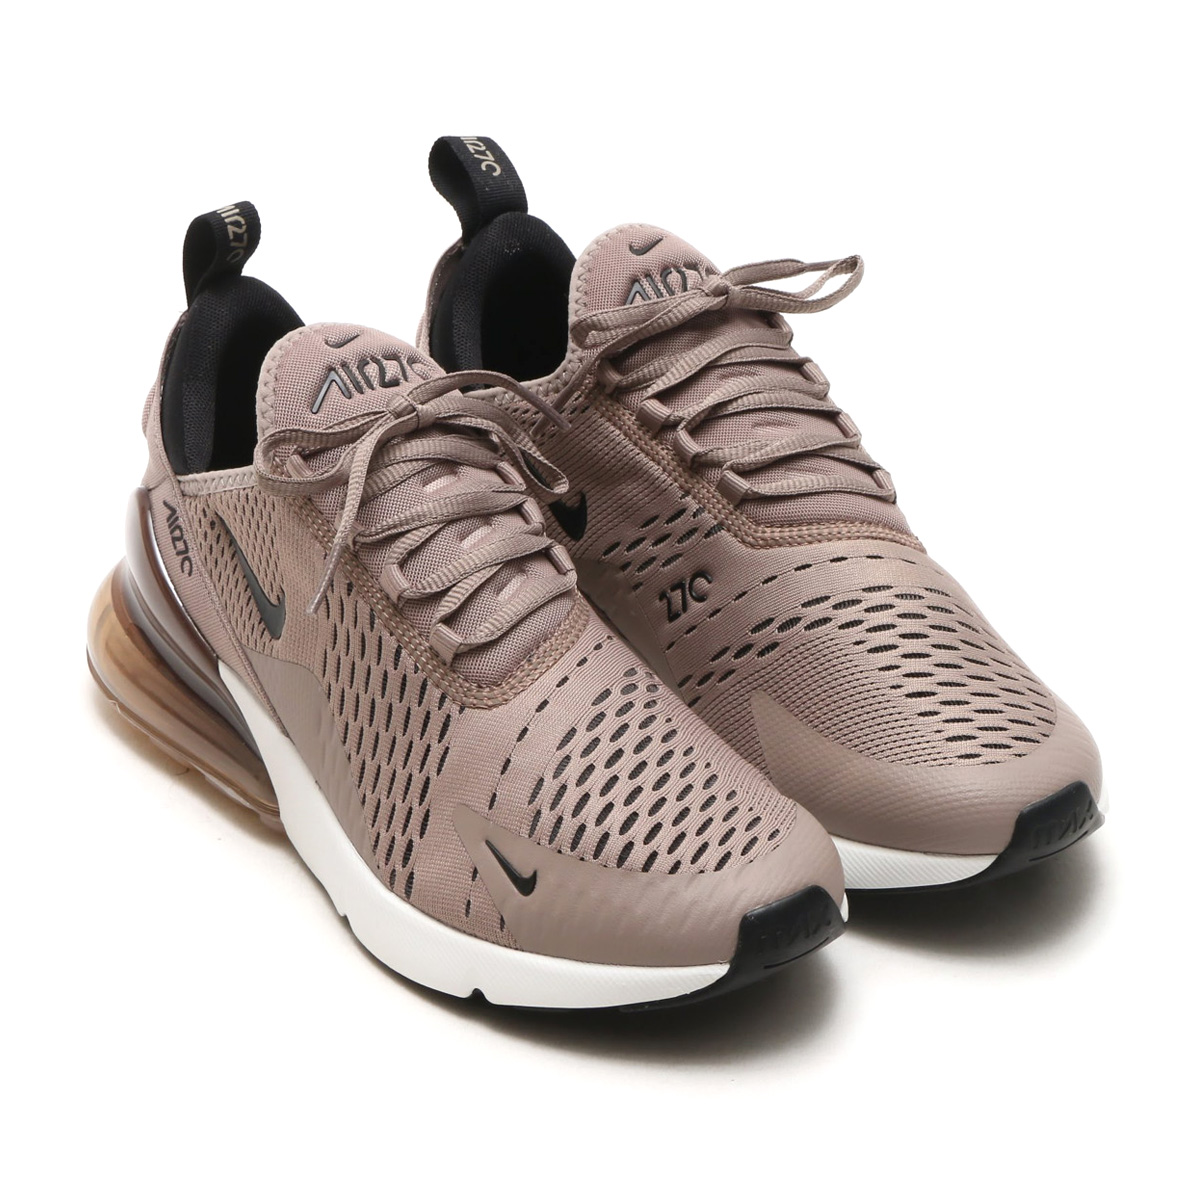 018932d8fcad62 NIKE AIR MAX 270 (Kie Ney AMAX 270) SEPIA STONE BLACK-SUMMIT WHITE 18SP-S